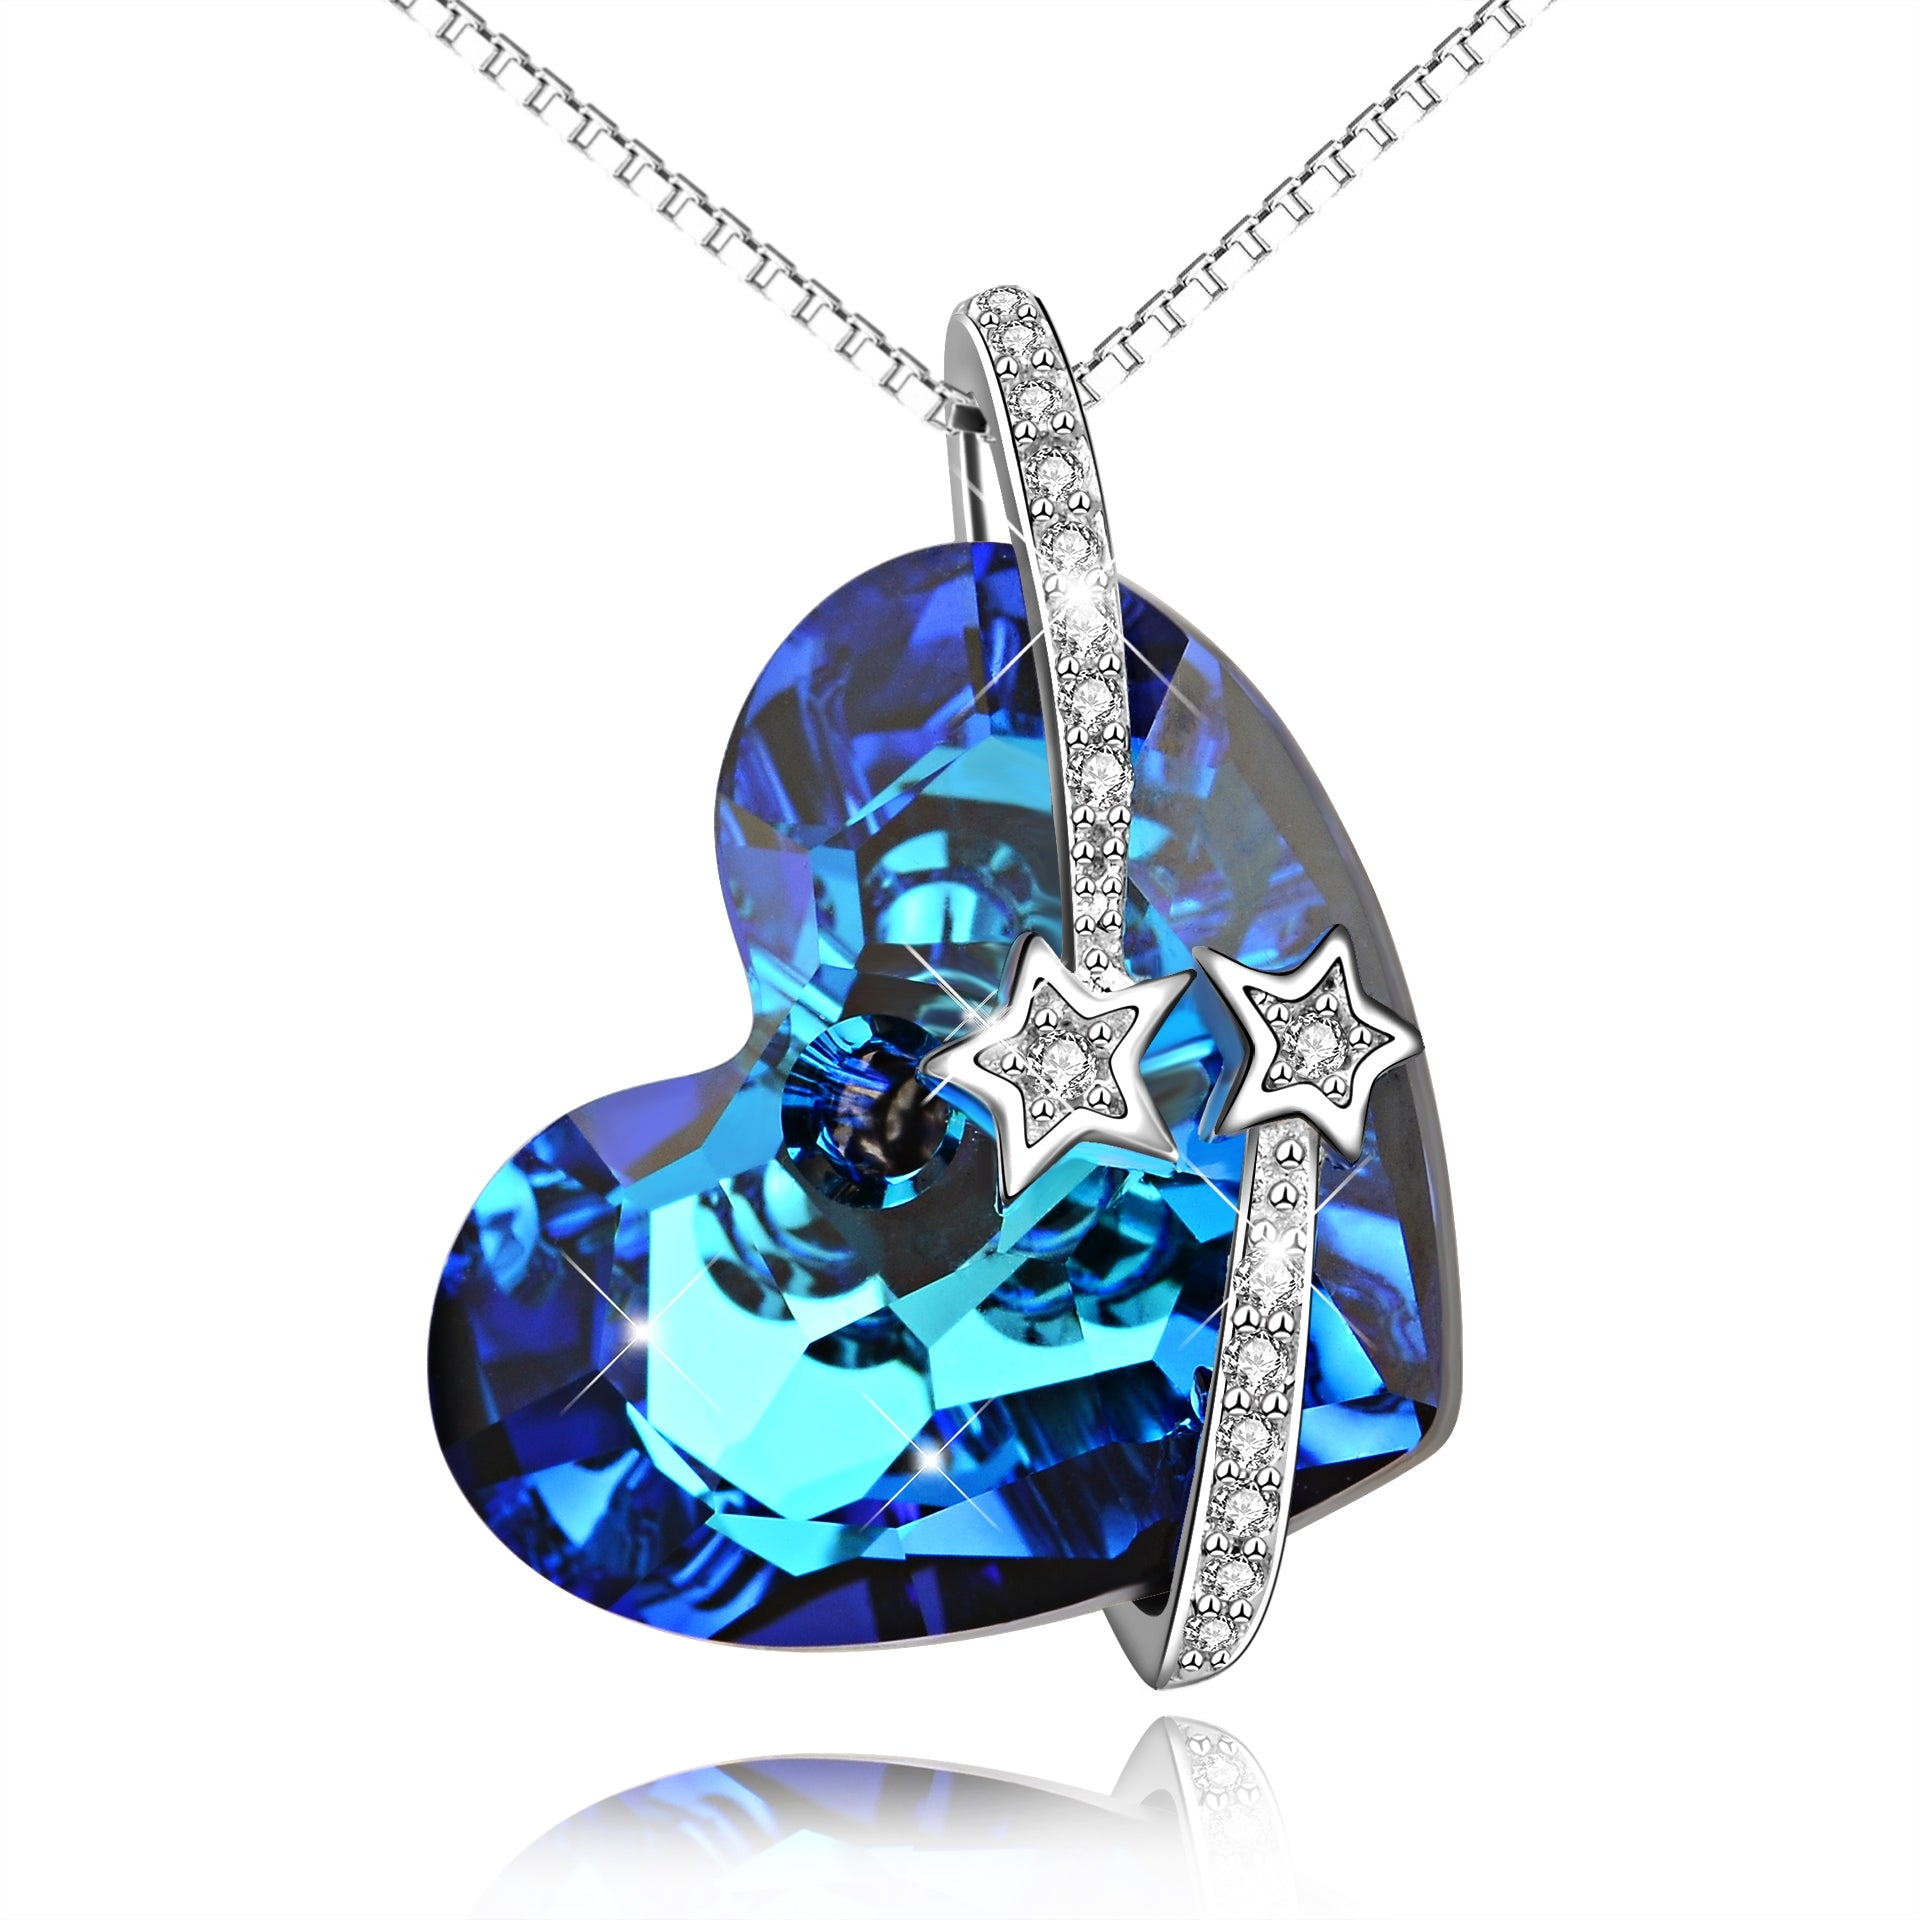 Crystal Star Heart Necklace Low MOQ S925 Sterling Silver Heart Pendant